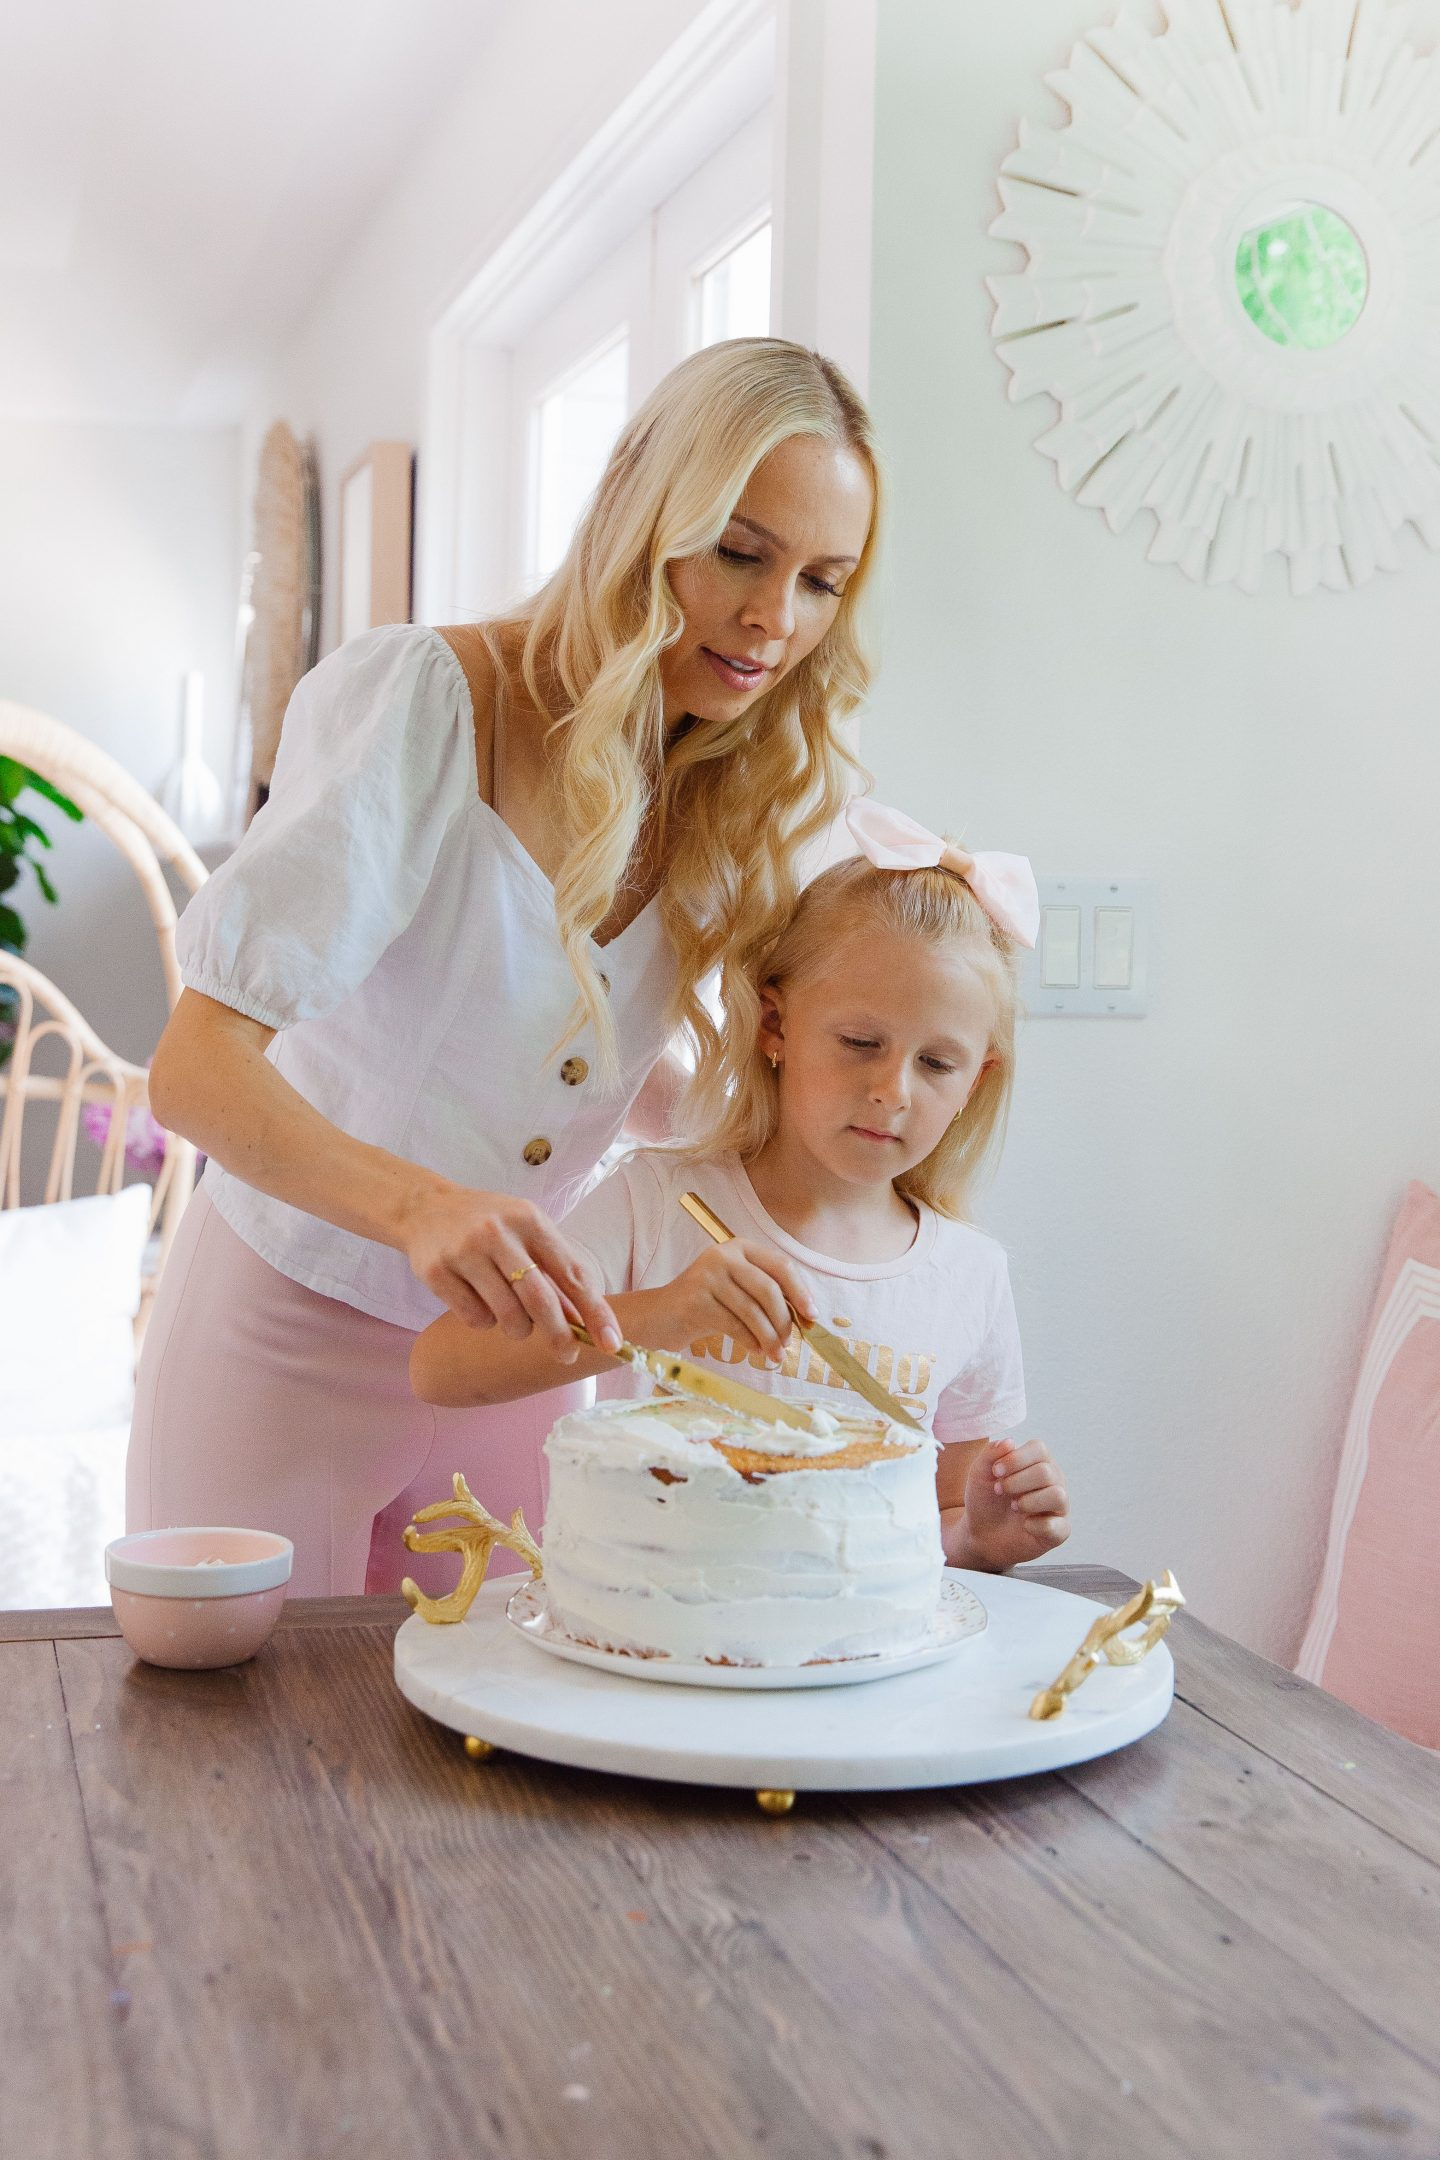 Fancy Sprinkles explosion cake baking featured by top US life and style blog, Lombard and Fifth